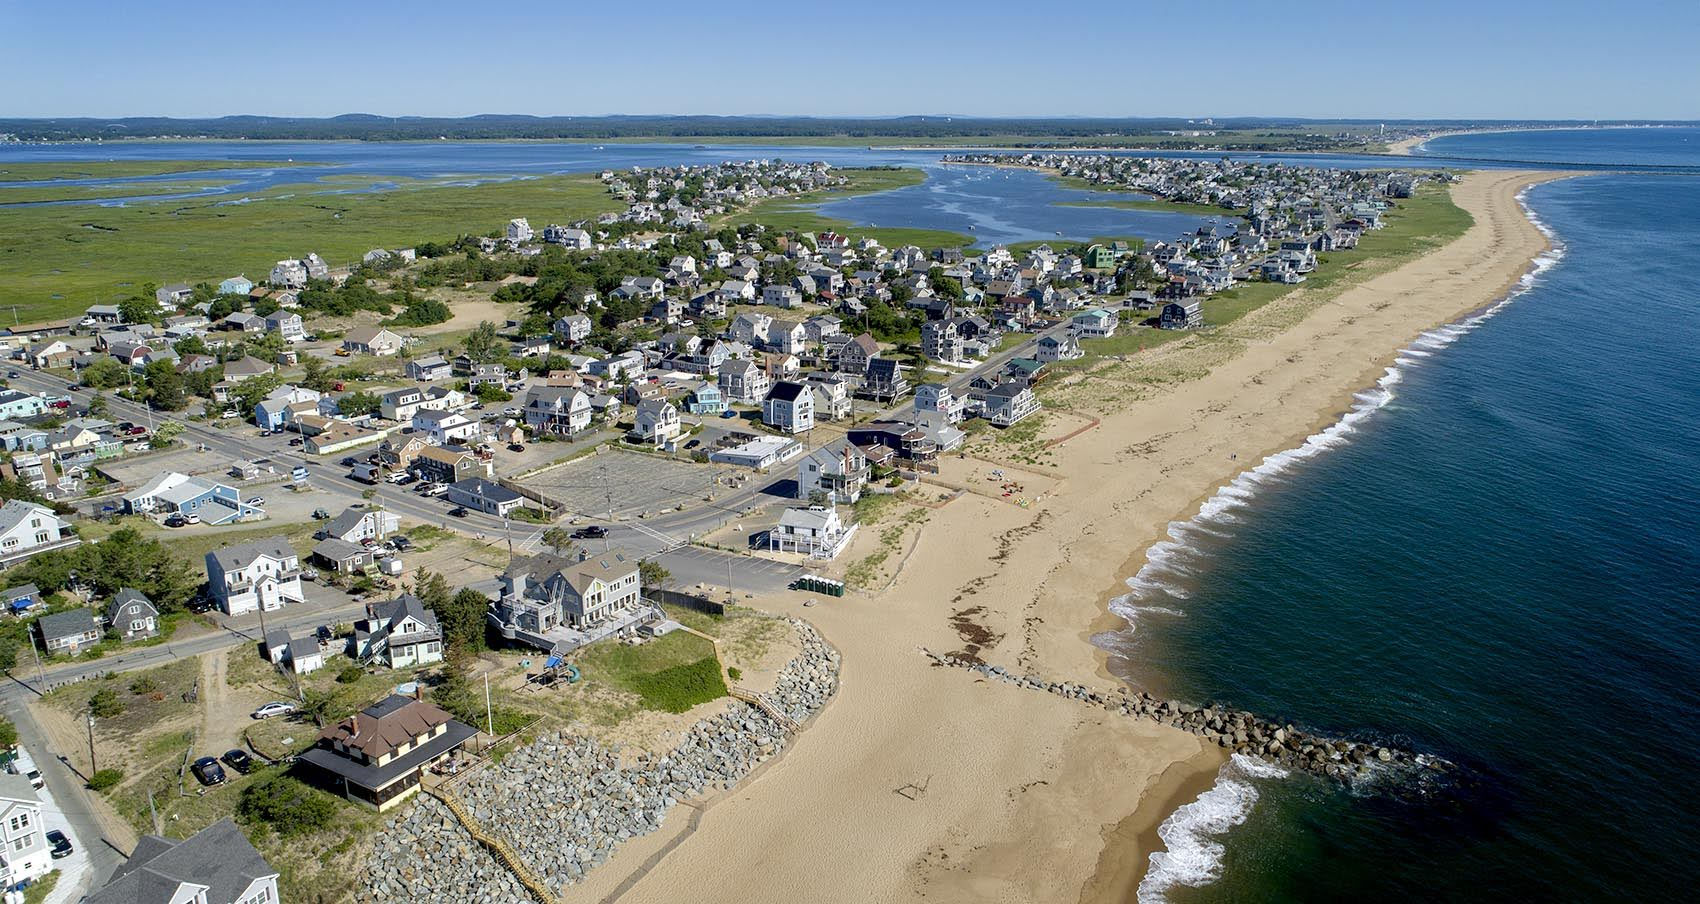 The north section of Plum Island lies between the Merrimack River estuary and the ocean. (Robin Lubbock/WBUR)